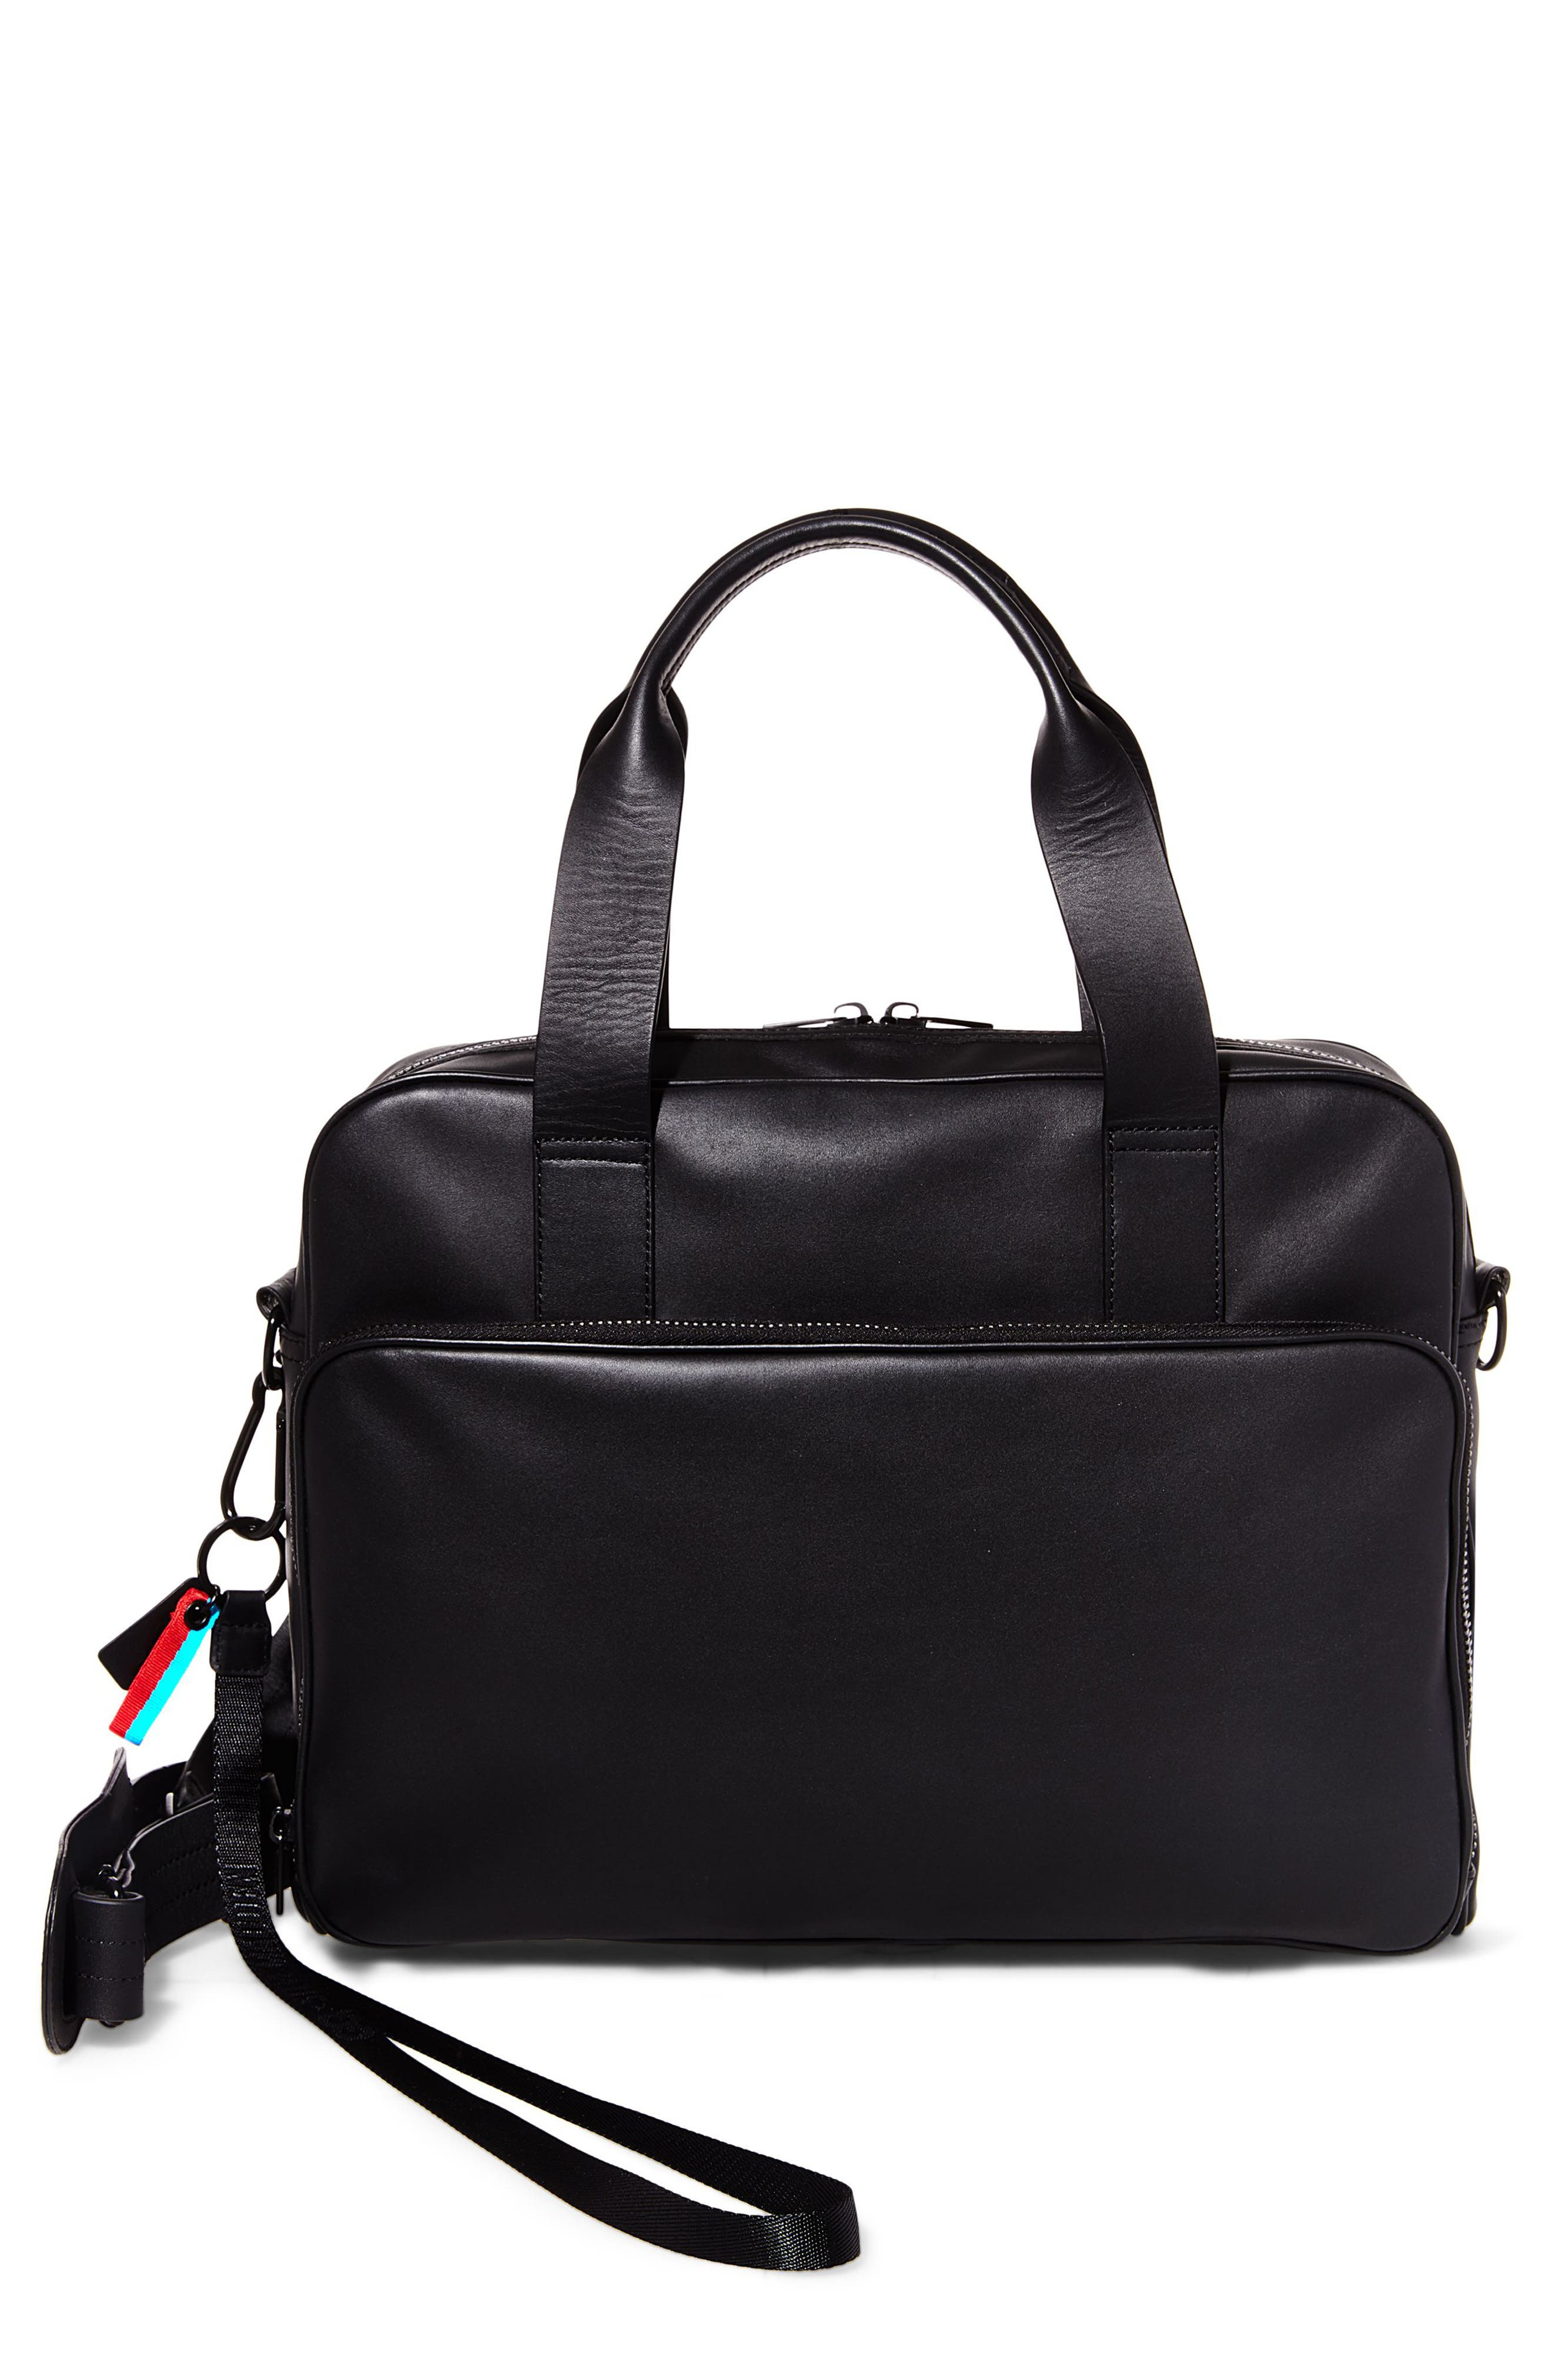 GQ x Steve Madden Leather Computer Bag,                         Main,                         color, 001